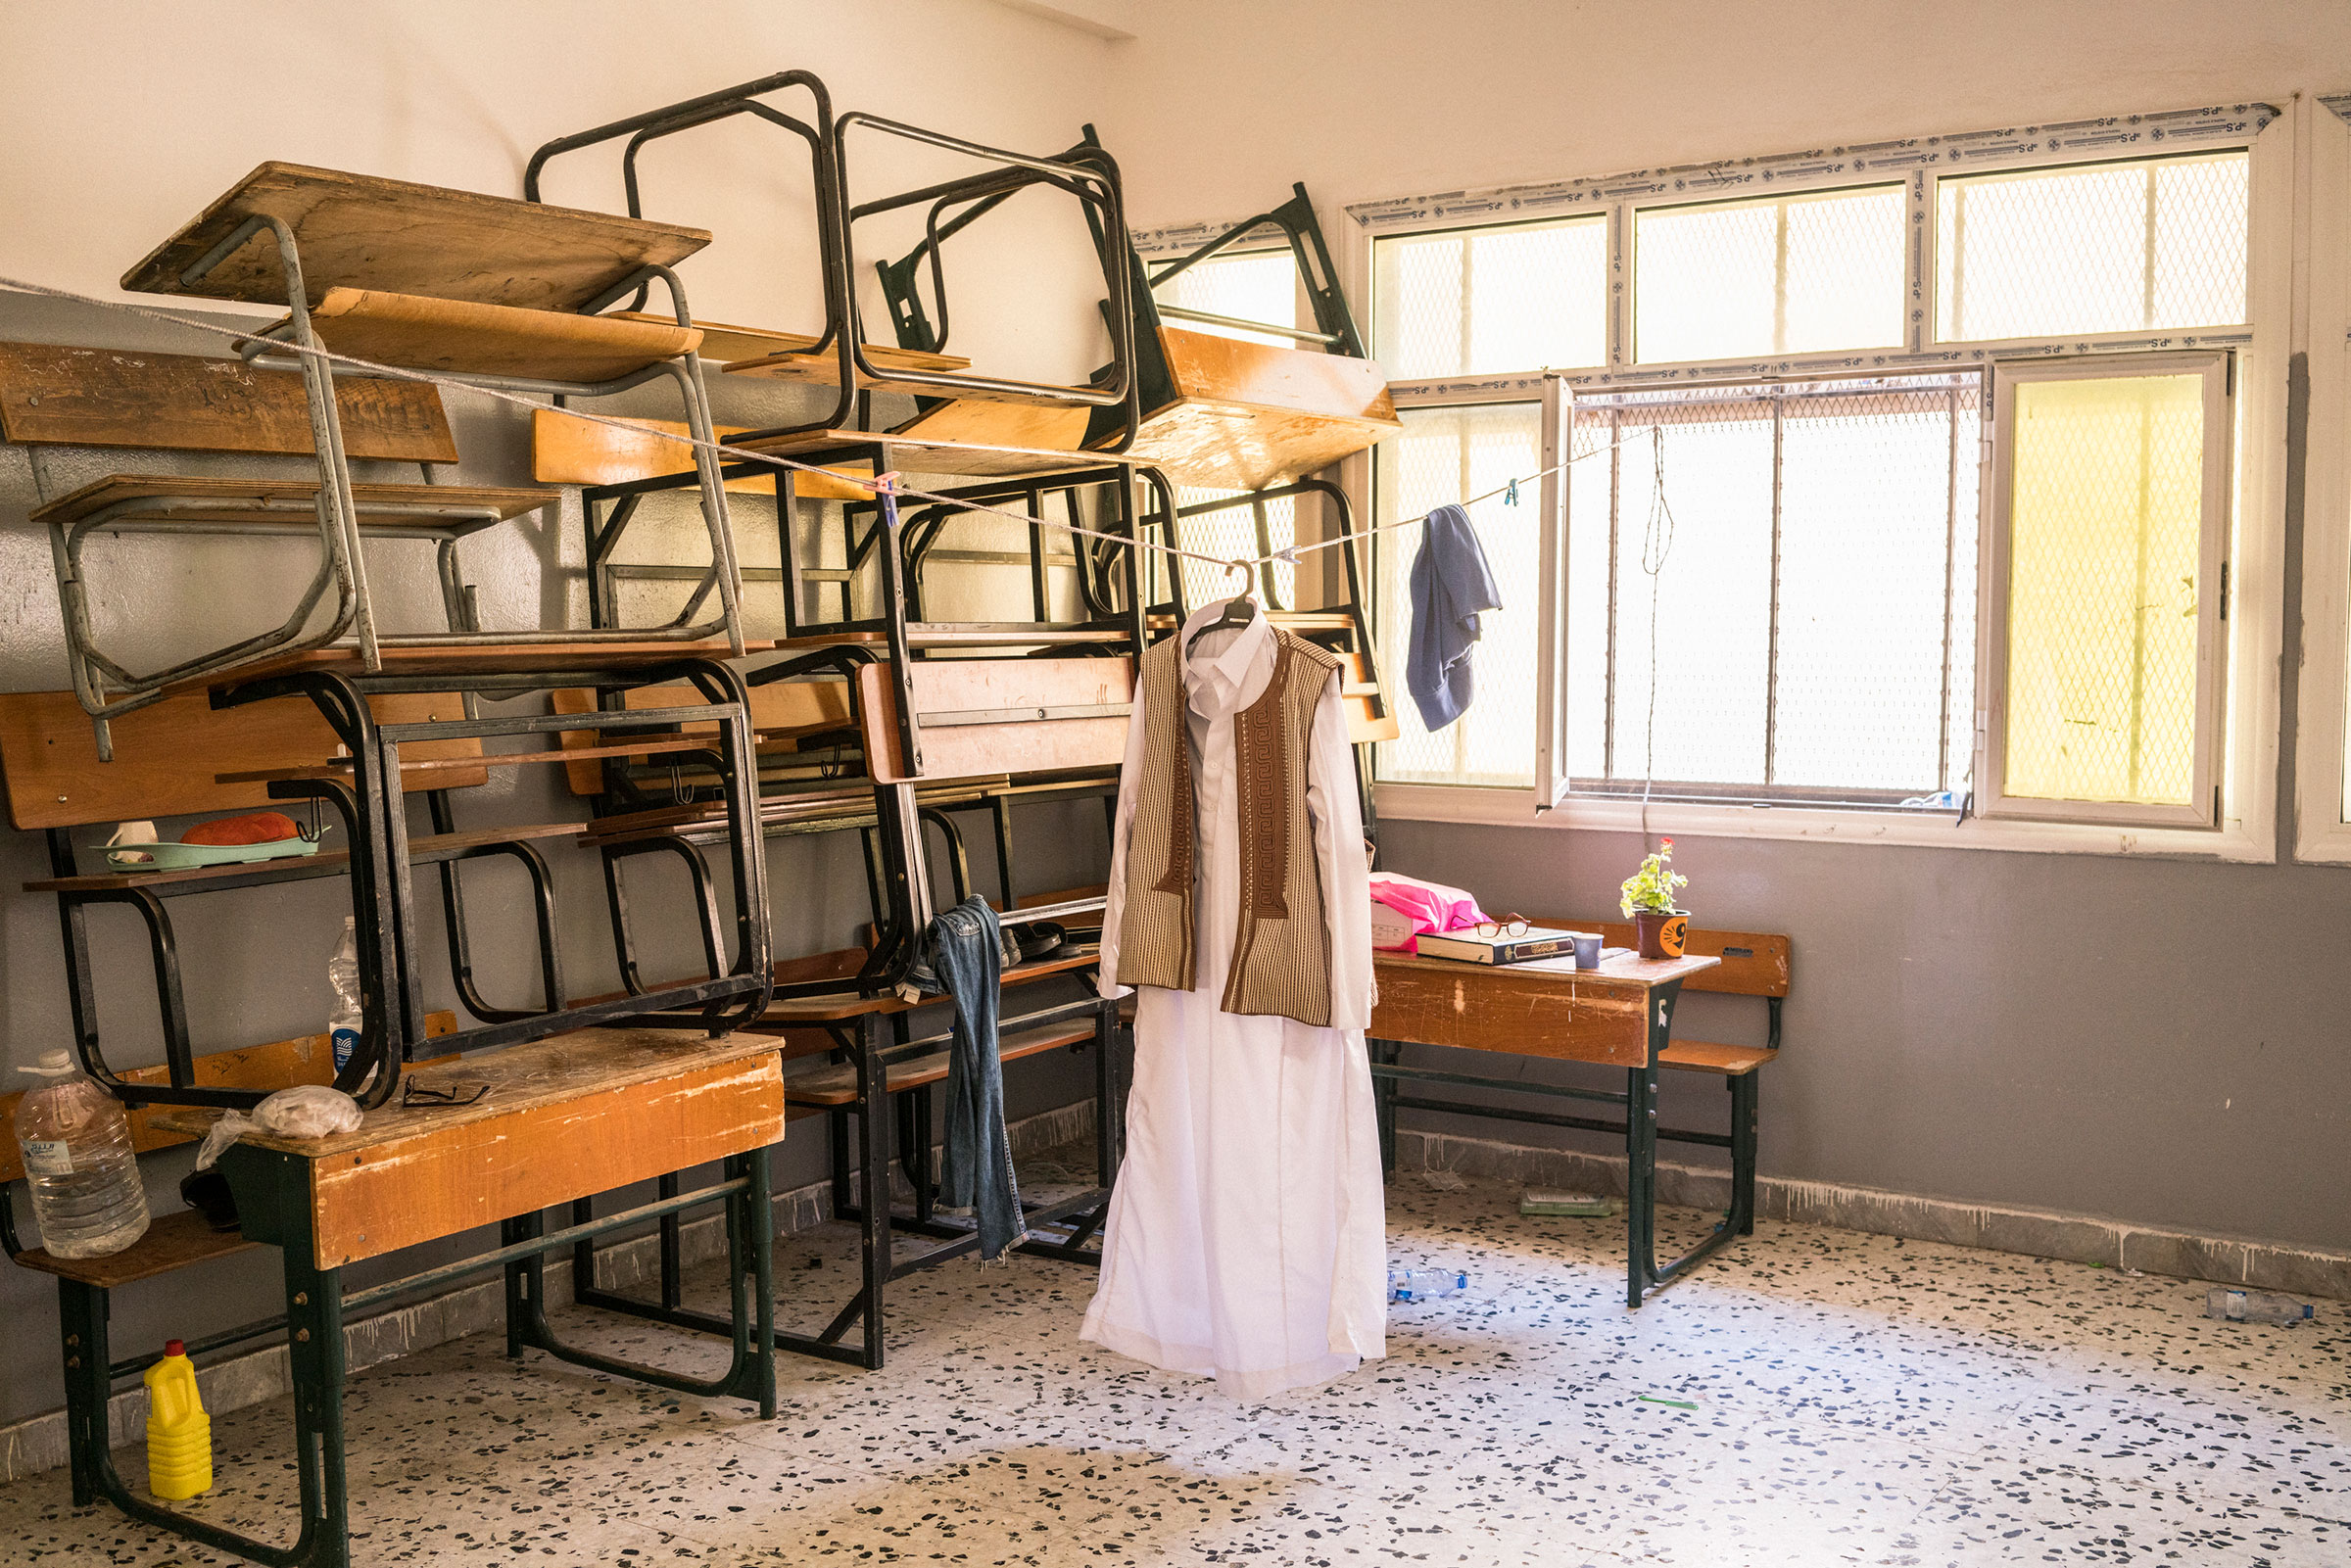 Clothes hang inside a school, which became a shelter for those fleeing their homes, on the front line in Tripoli.